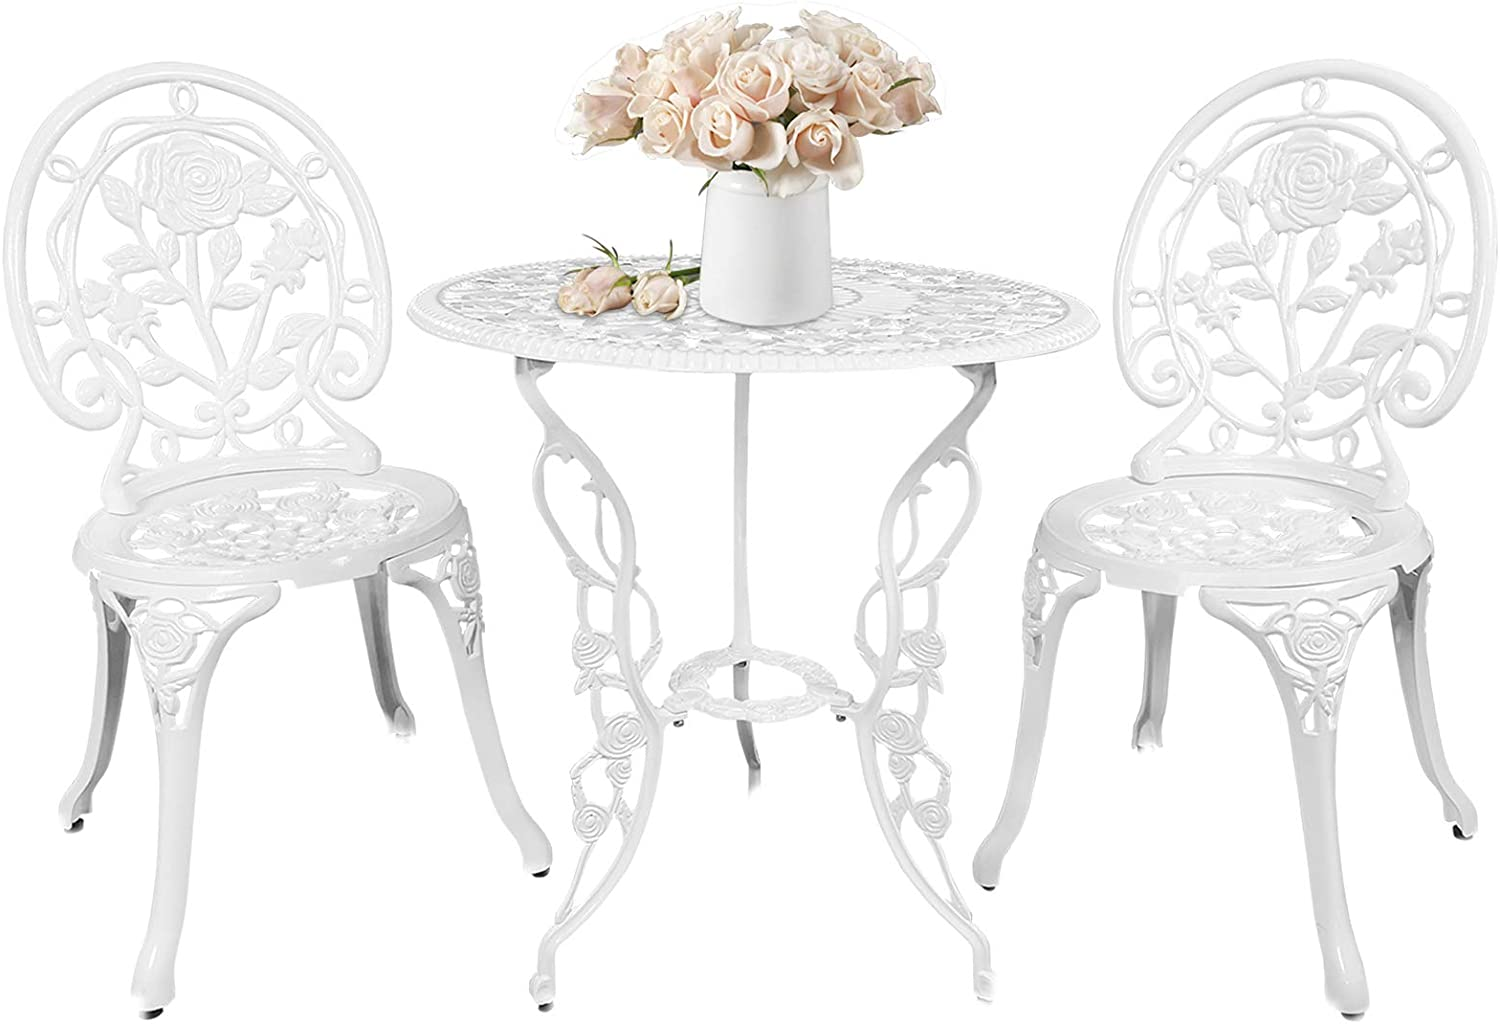 HOMEFUN Bistro Table Set, White Rose 3 Piece, Outdoor Patio Table and Chairs Furniture, Durable Rust Weather Resistance